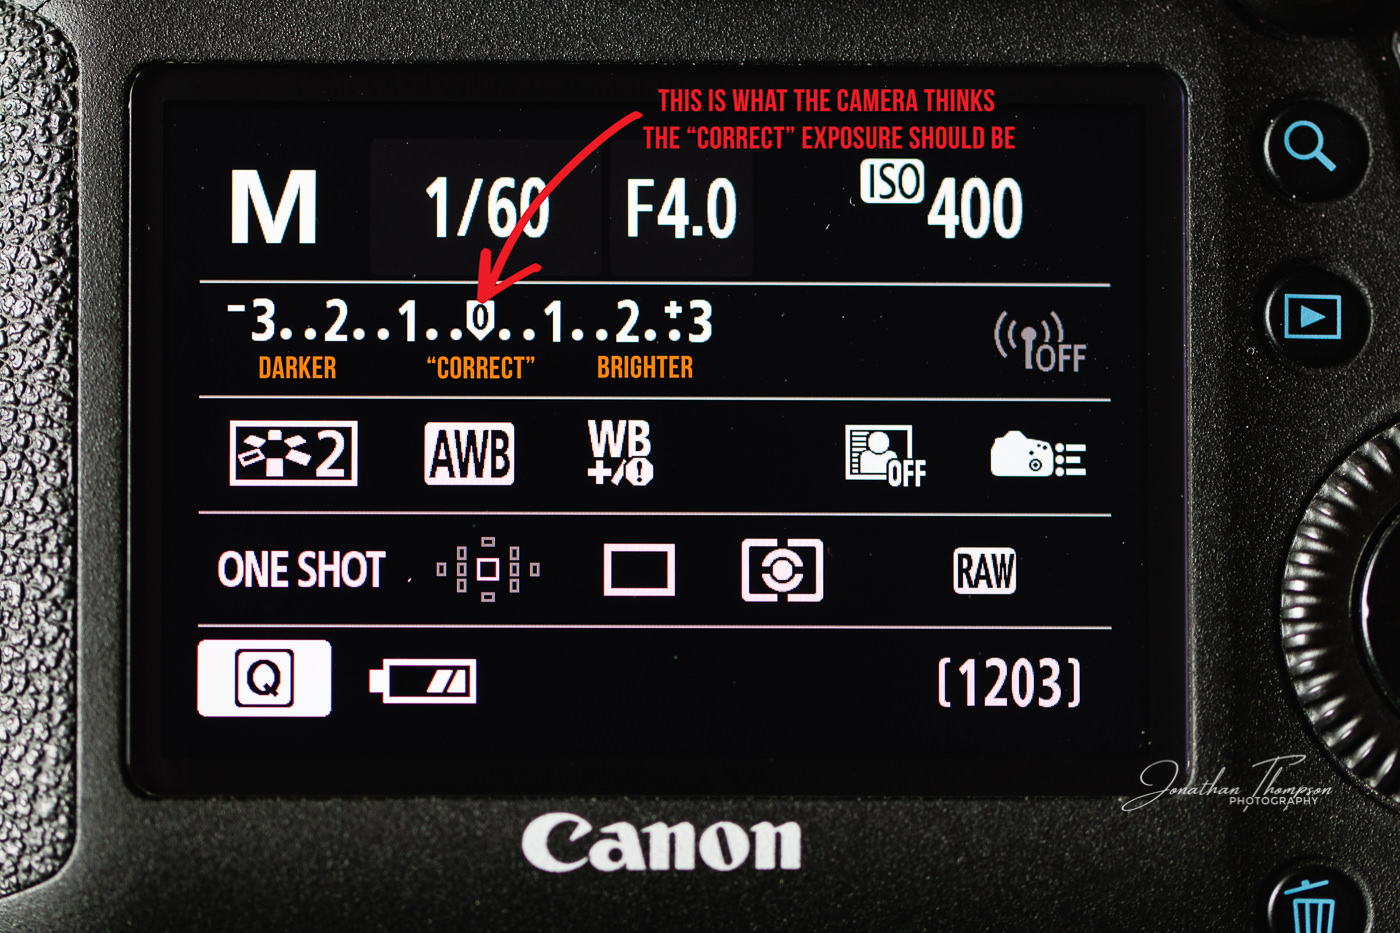 Rear screen of a Canon DSLR info screen with the reflective meter showing